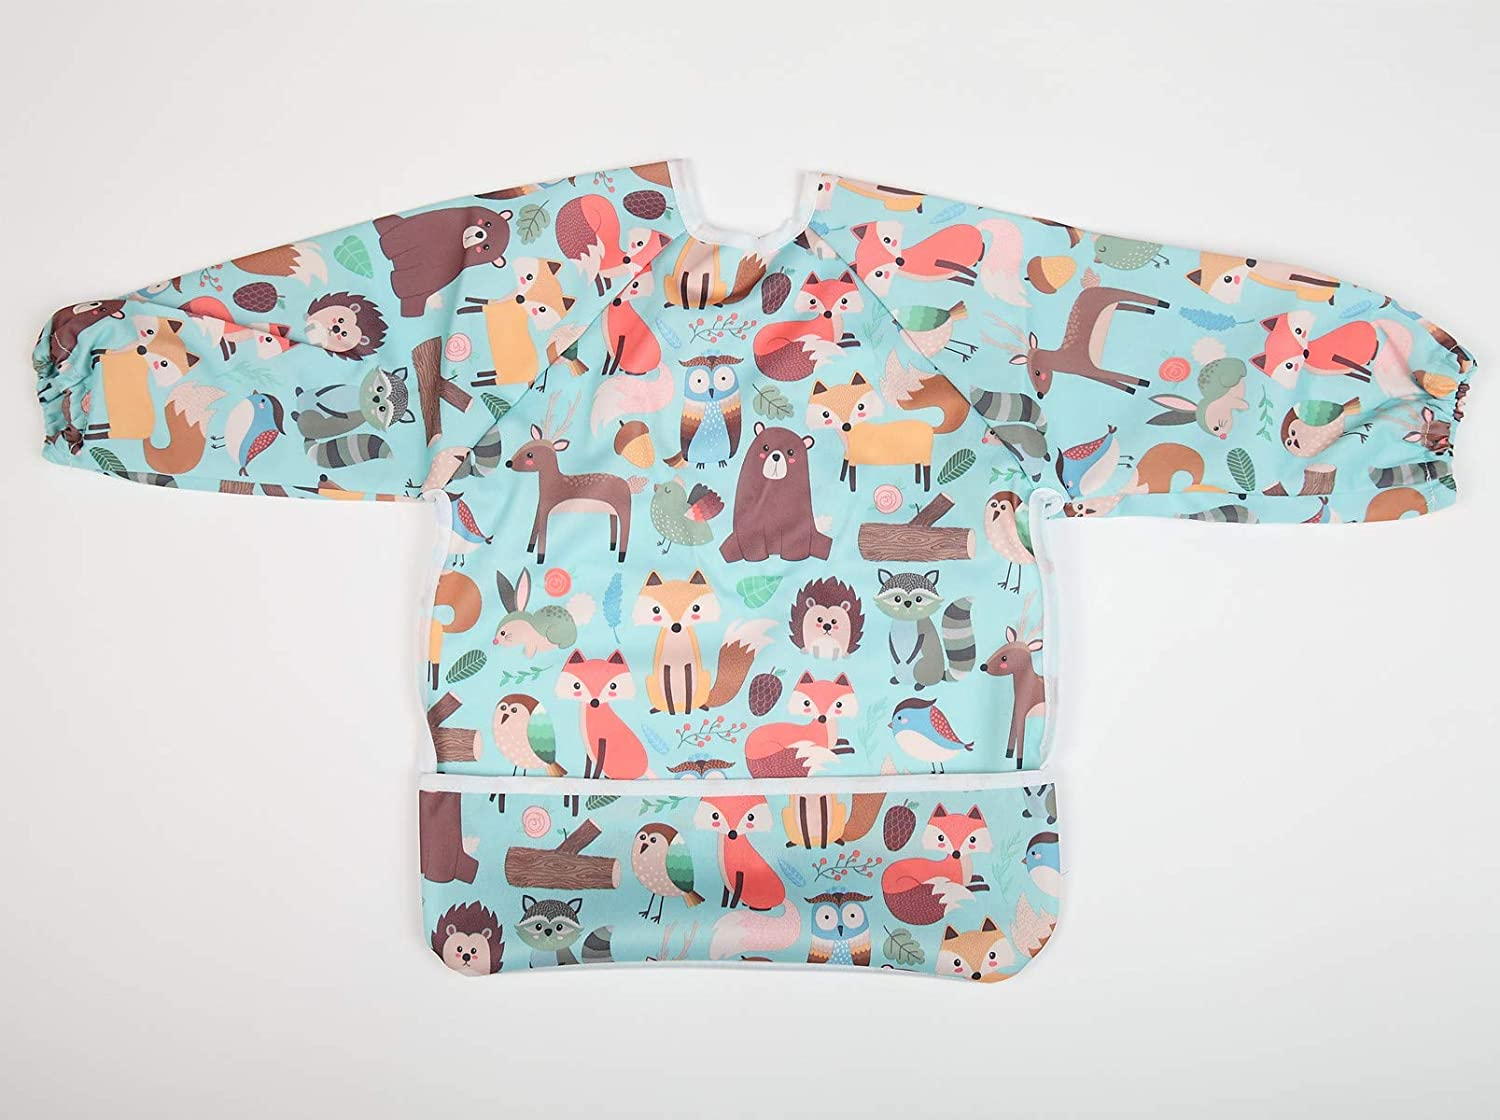 Baby Bib Sleeved Shirt With Pocket 1-3 years old Toddler Painting Drawing